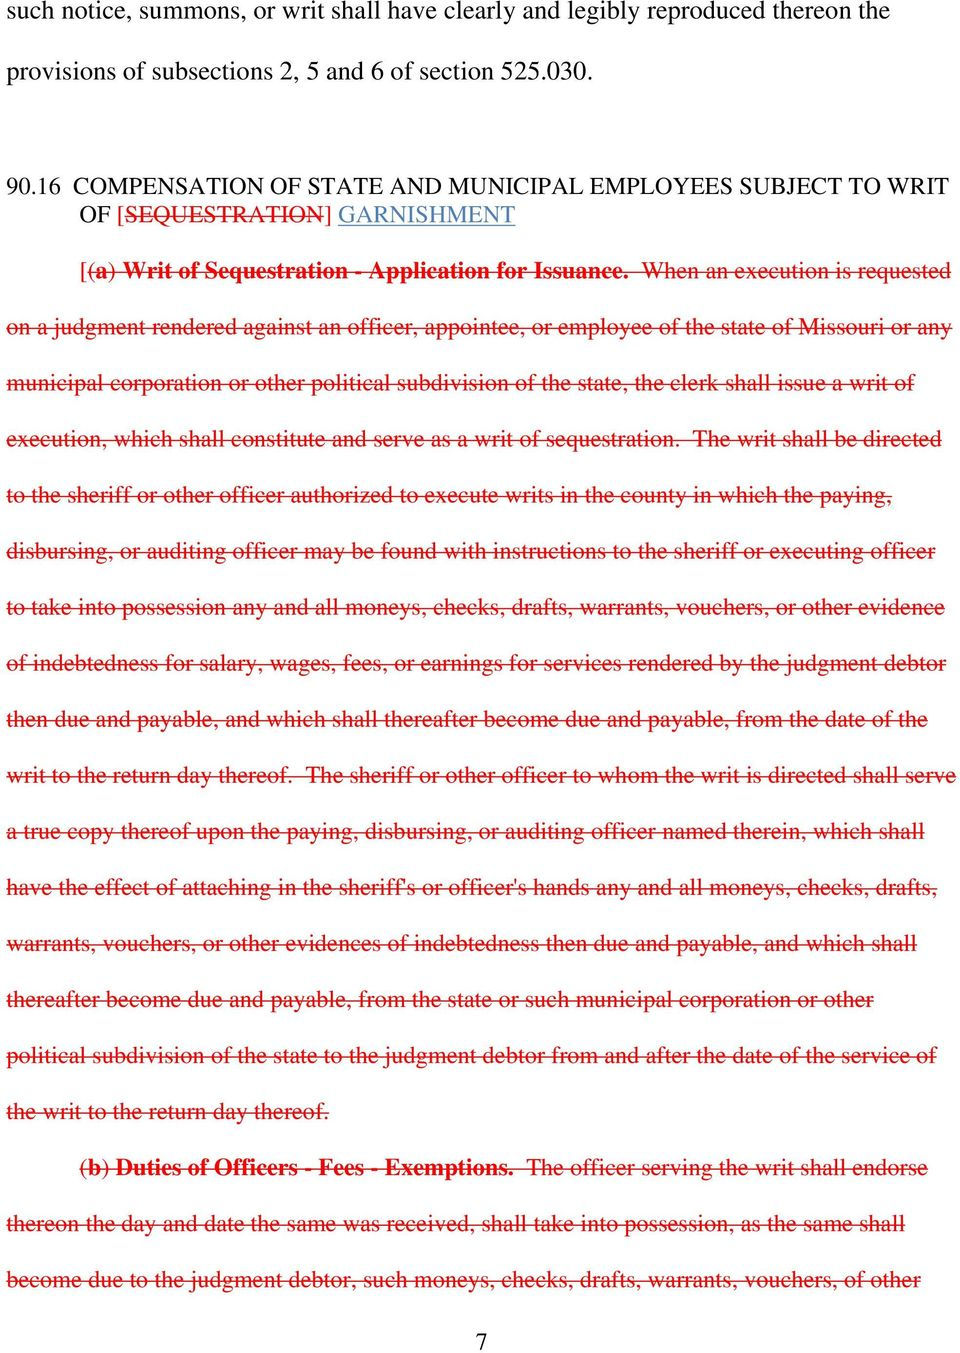 When an execution is requested on a judgment rendered against an officer, appointee, or employee of the state of Missouri or any municipal corporation or other political subdivision of the state, the